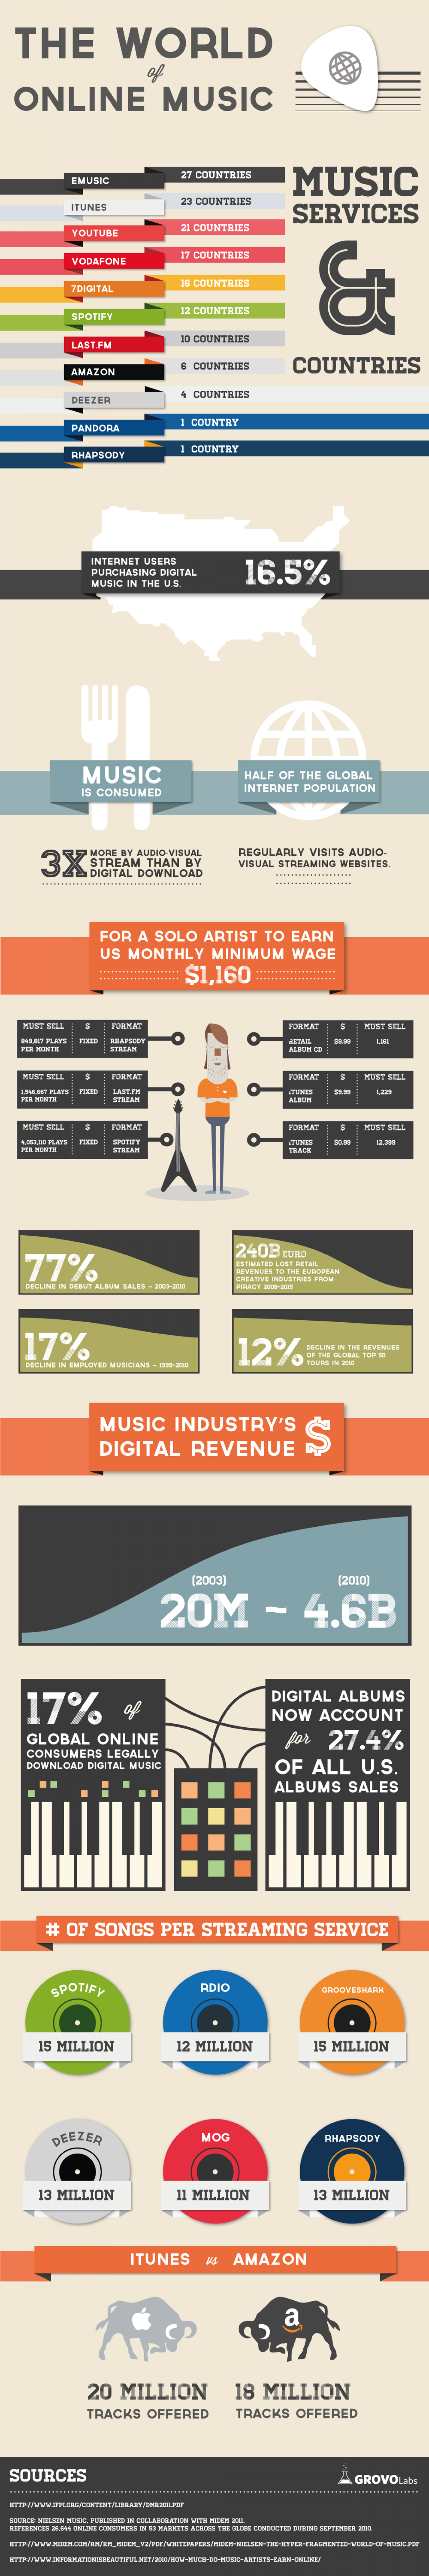 The World of Online Music Infographic